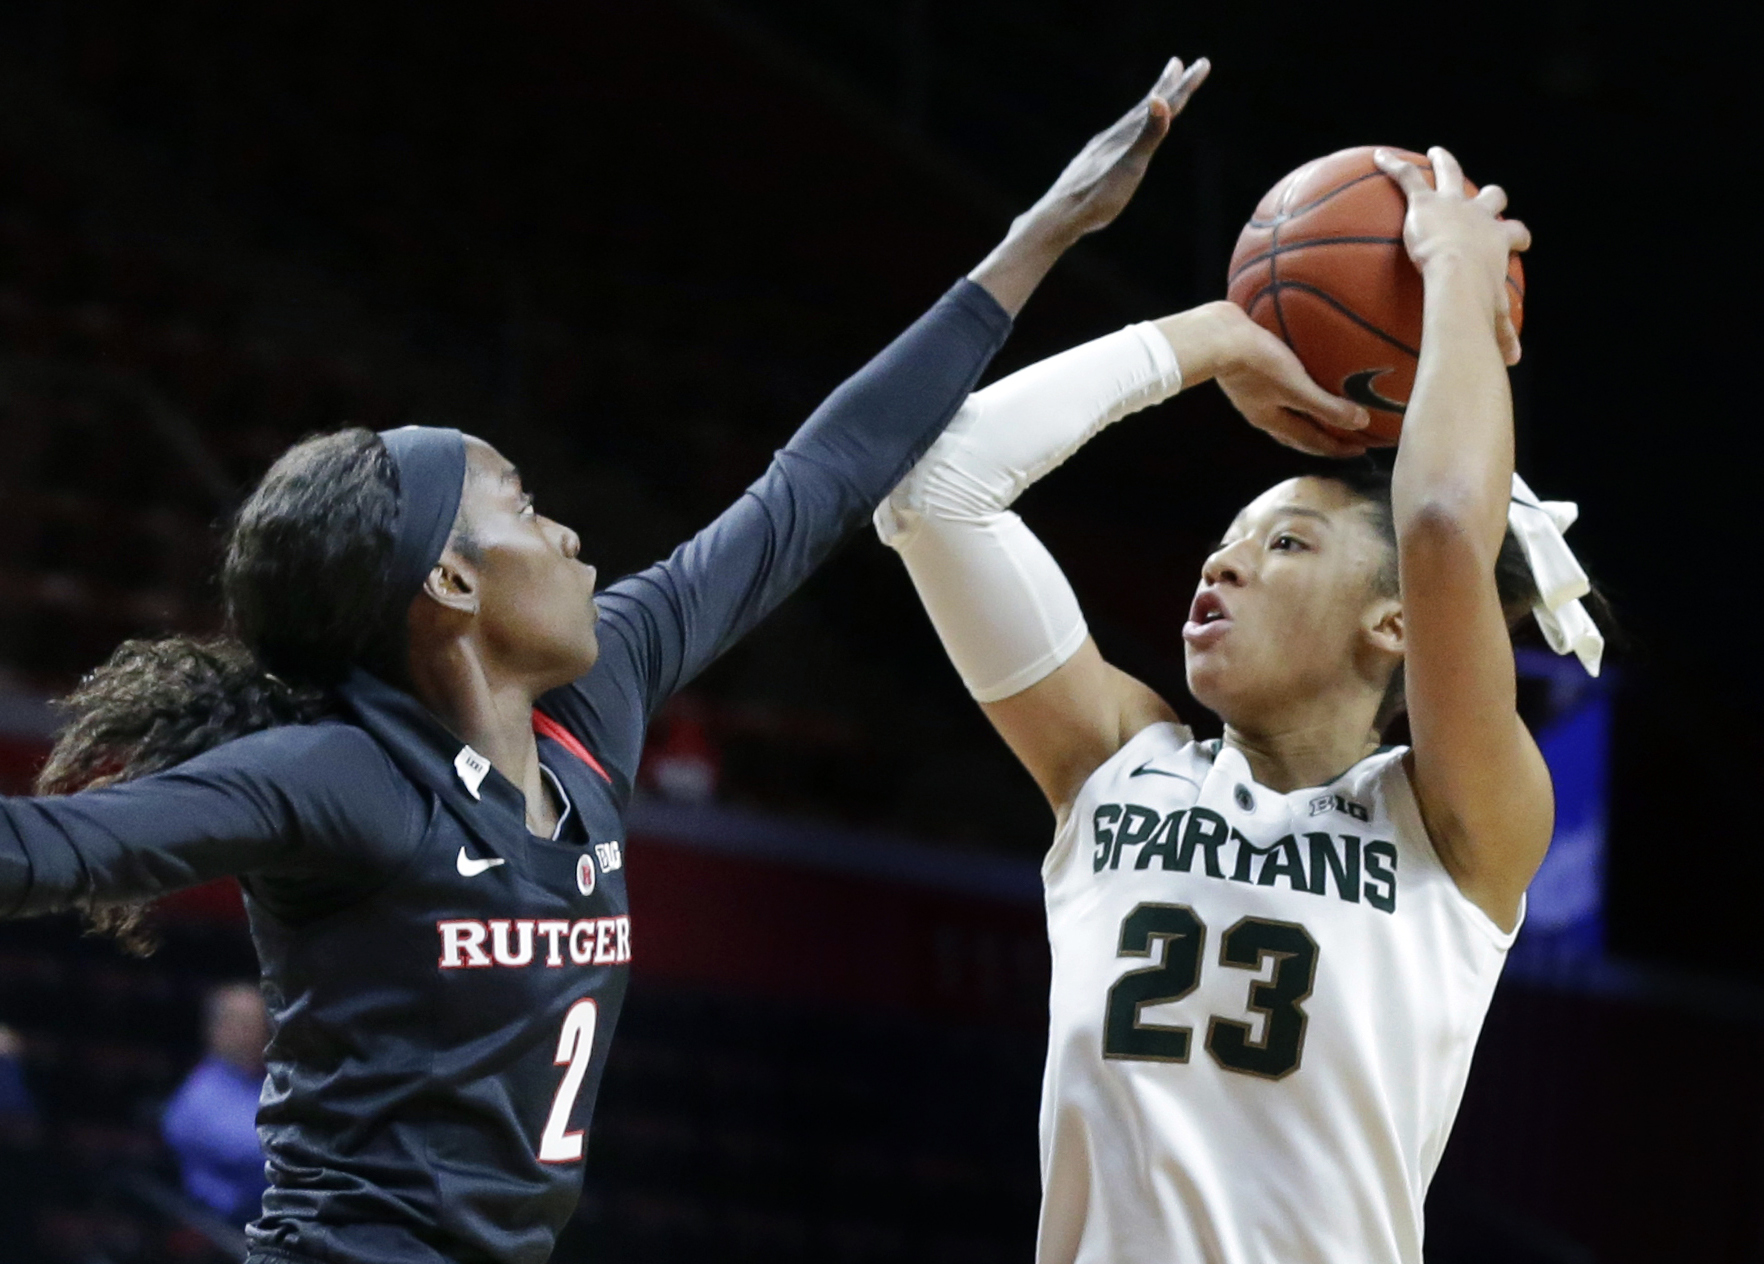 FILE - In this Feb. 18, 2016, file photo, Michigan State forward Aerial Powers (23) shoots over Rutgers forward Kahleah Copper (2) during the first half of an NCAA college basketball game in Piscataway, N.J. Powers leads fourth-seeded Michigan State into